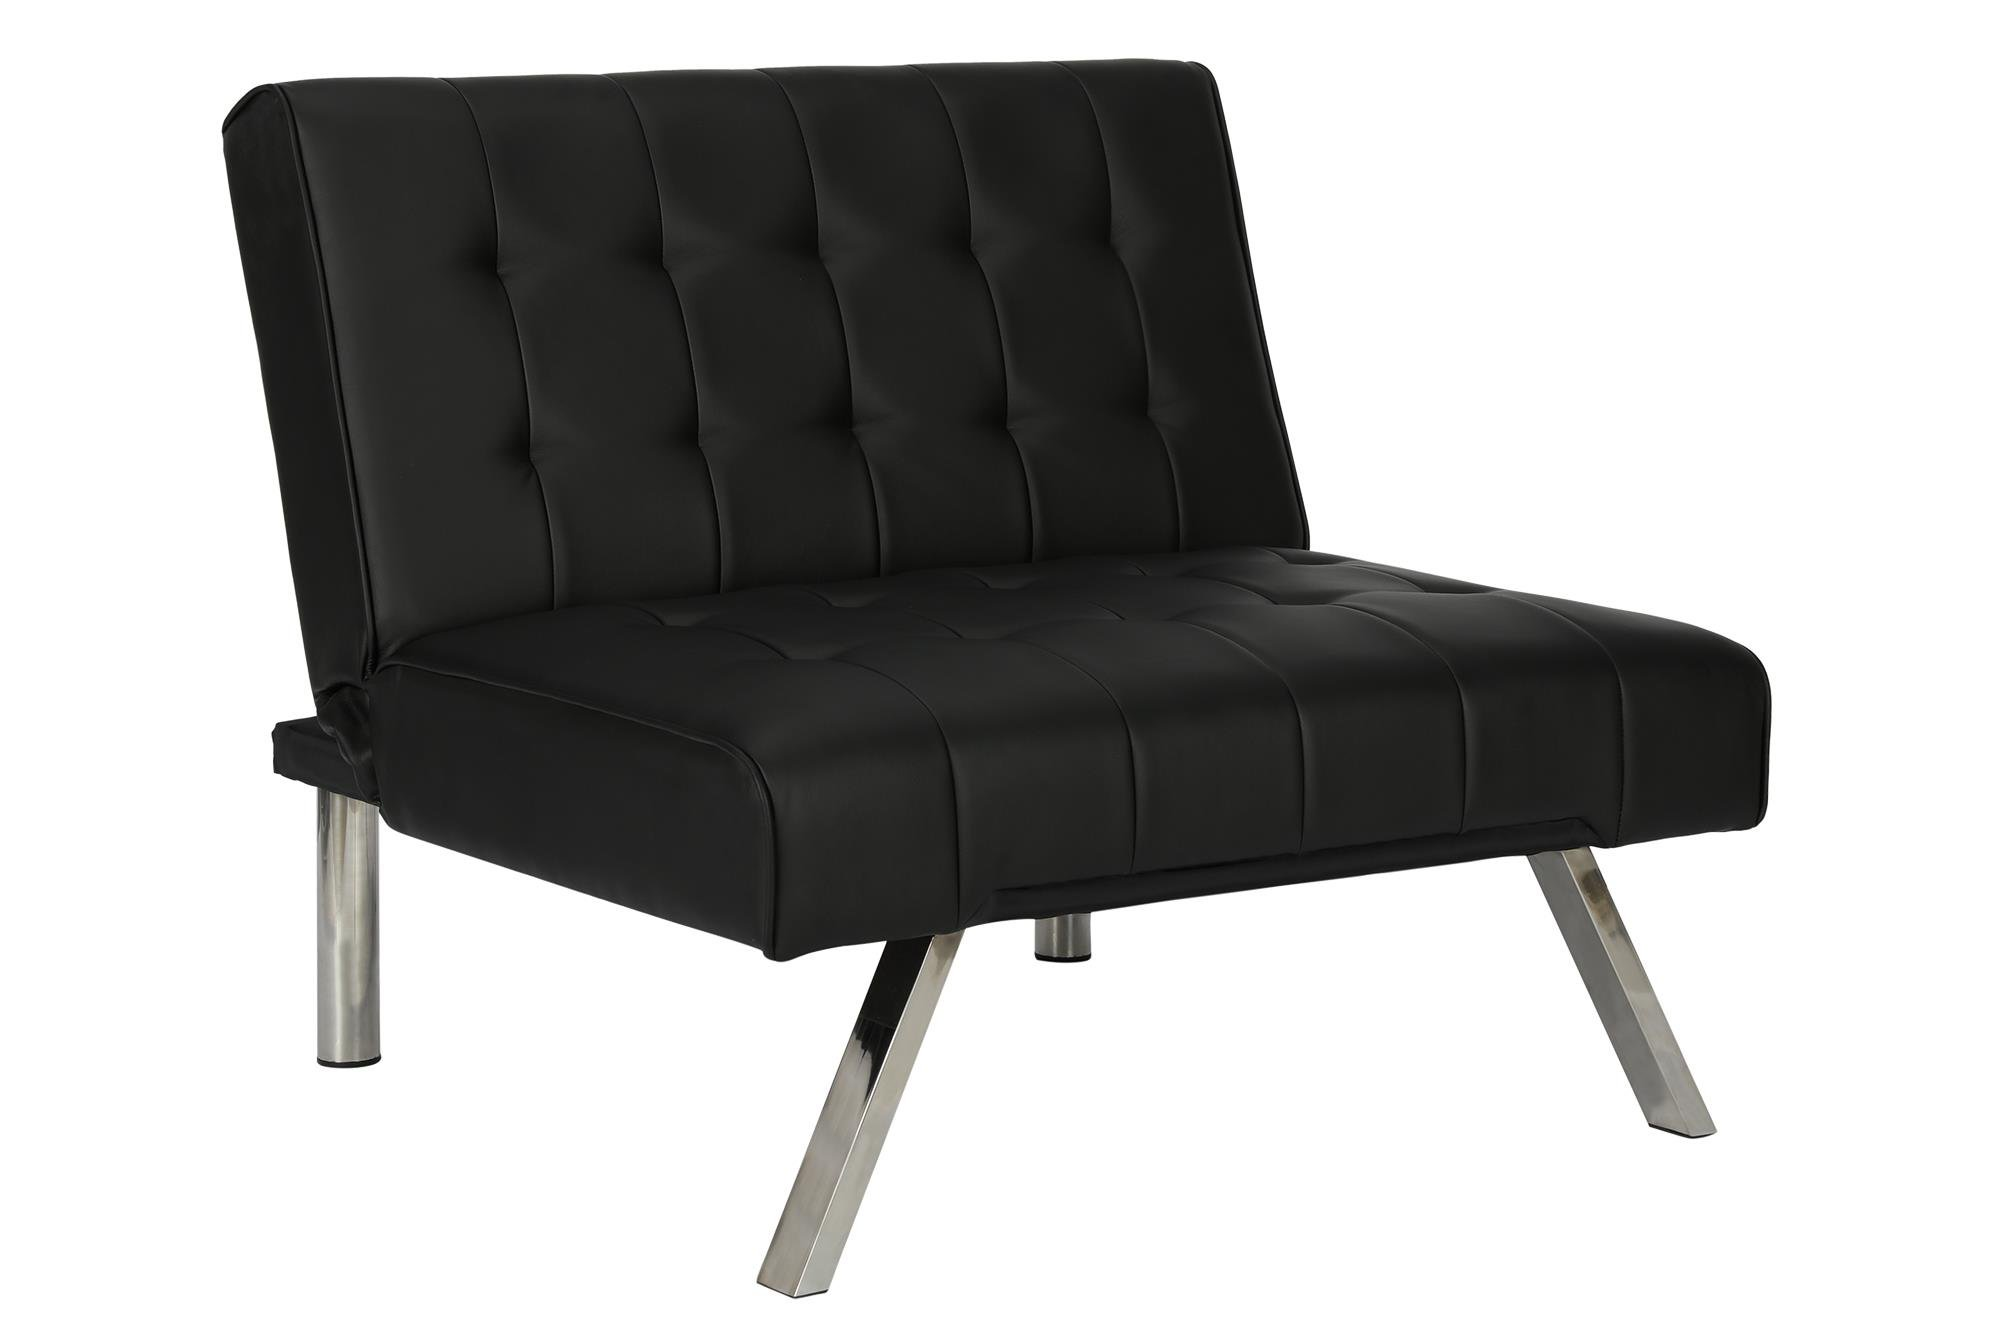 DHP Emily Accent Chair with Split-Back and Chrome Legs, Black Faux Leather